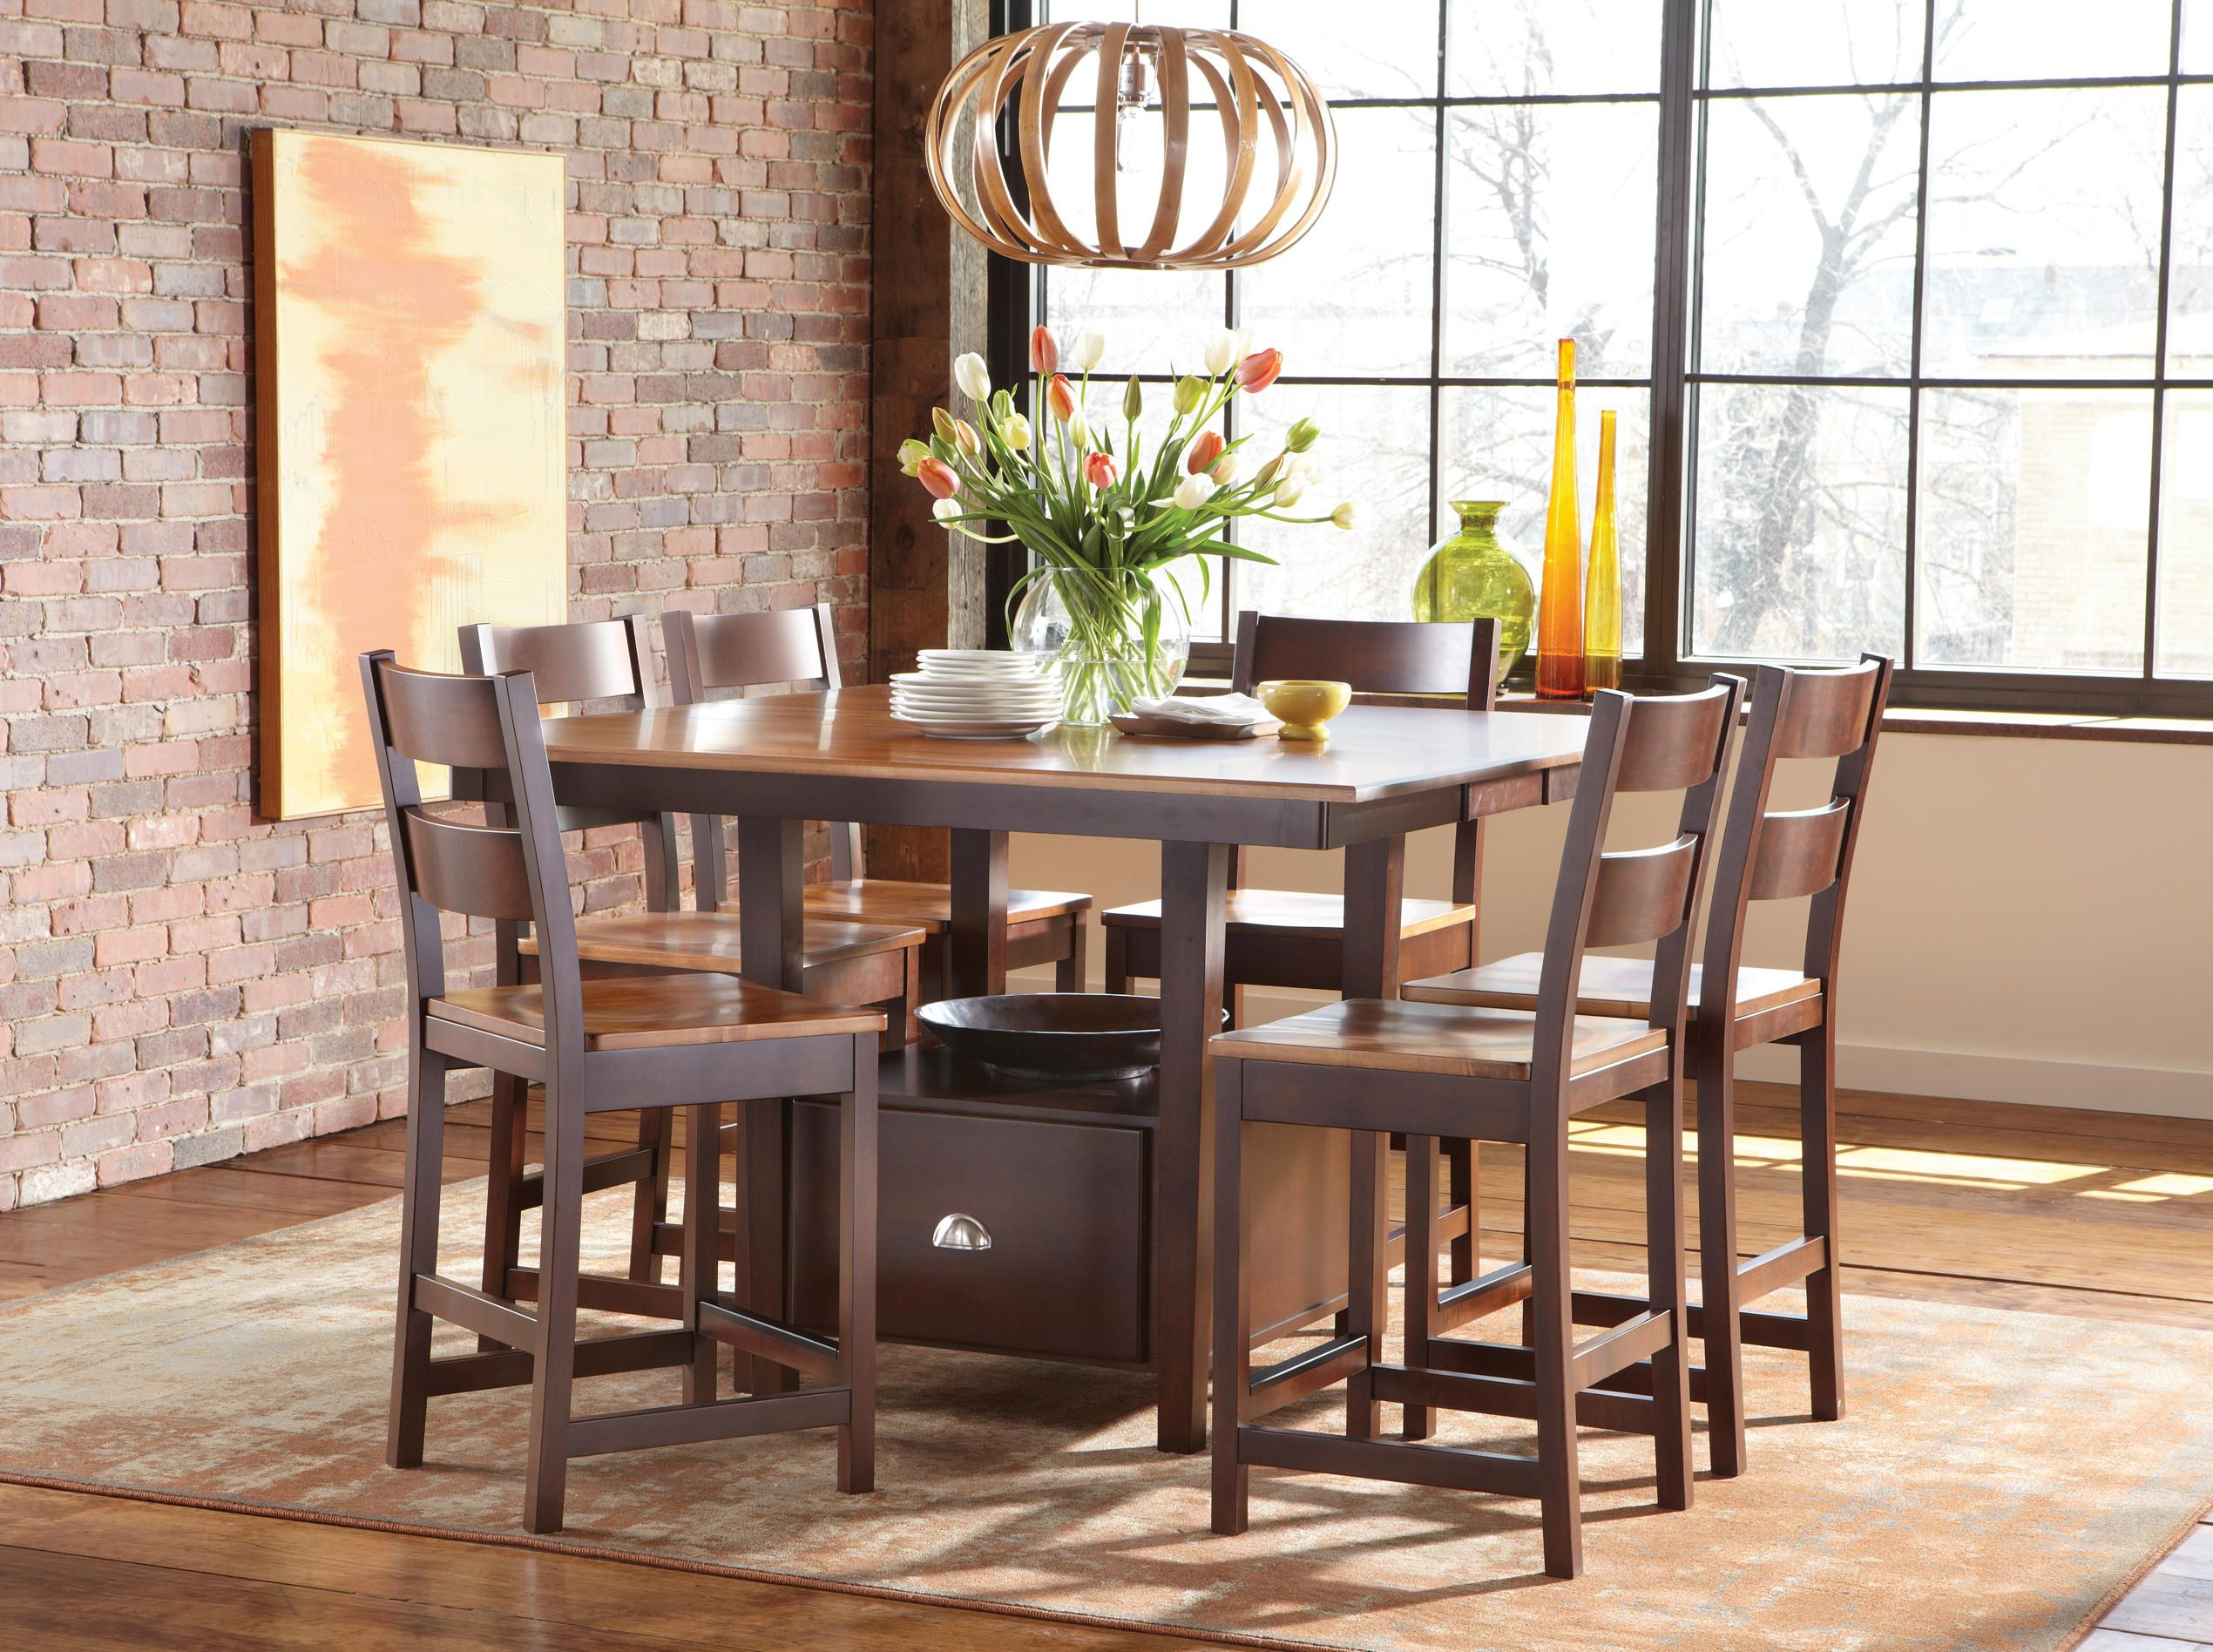 Larkin Gathering Collection Gathering Height Dining Rooms